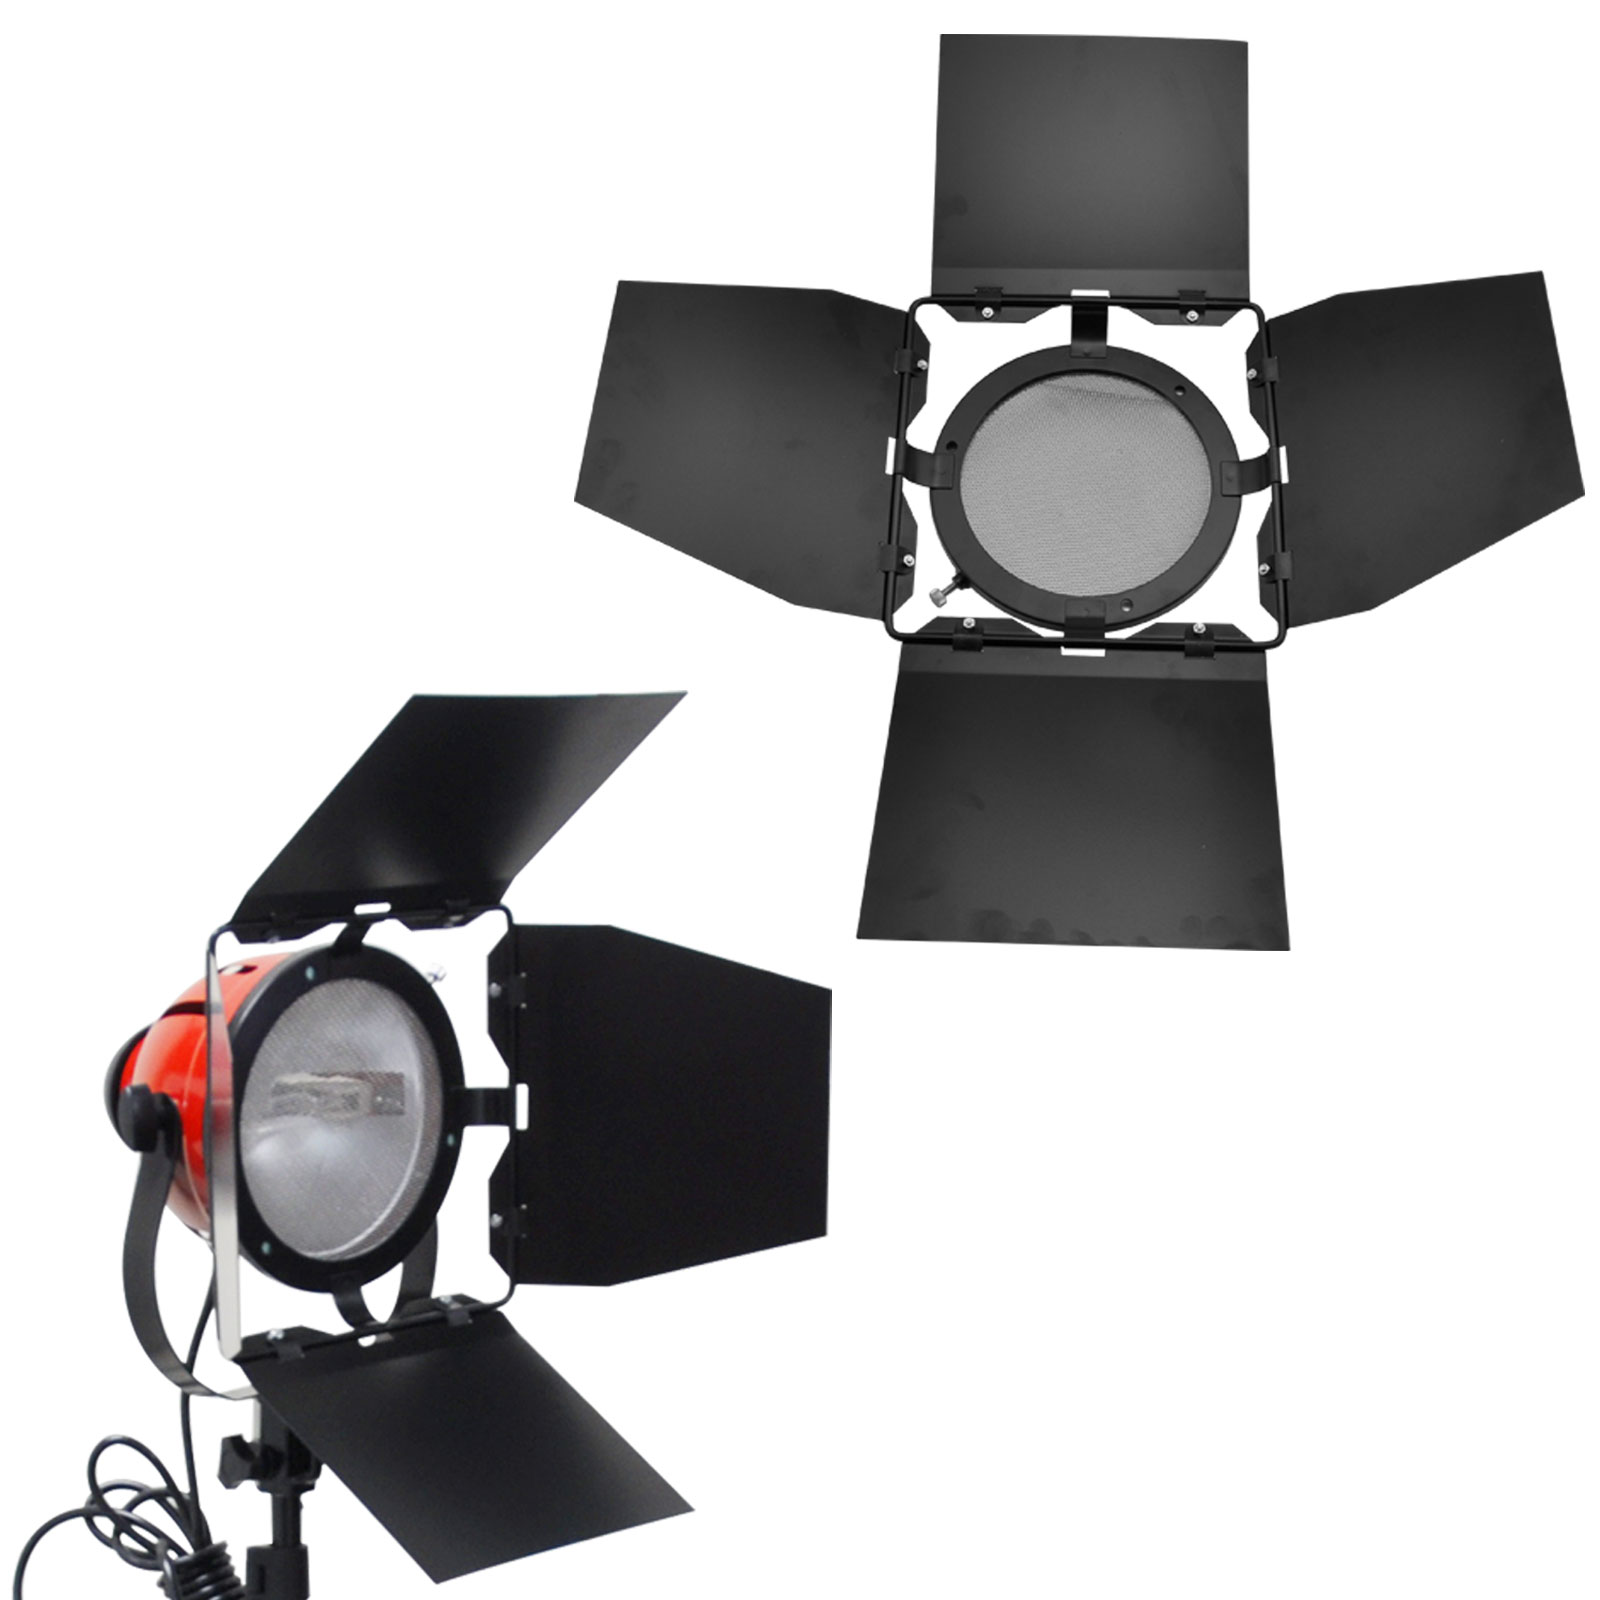 Eclairage Photo Studio Kit Projecteur Mandarine Readhead 3x800w Lumière Photo